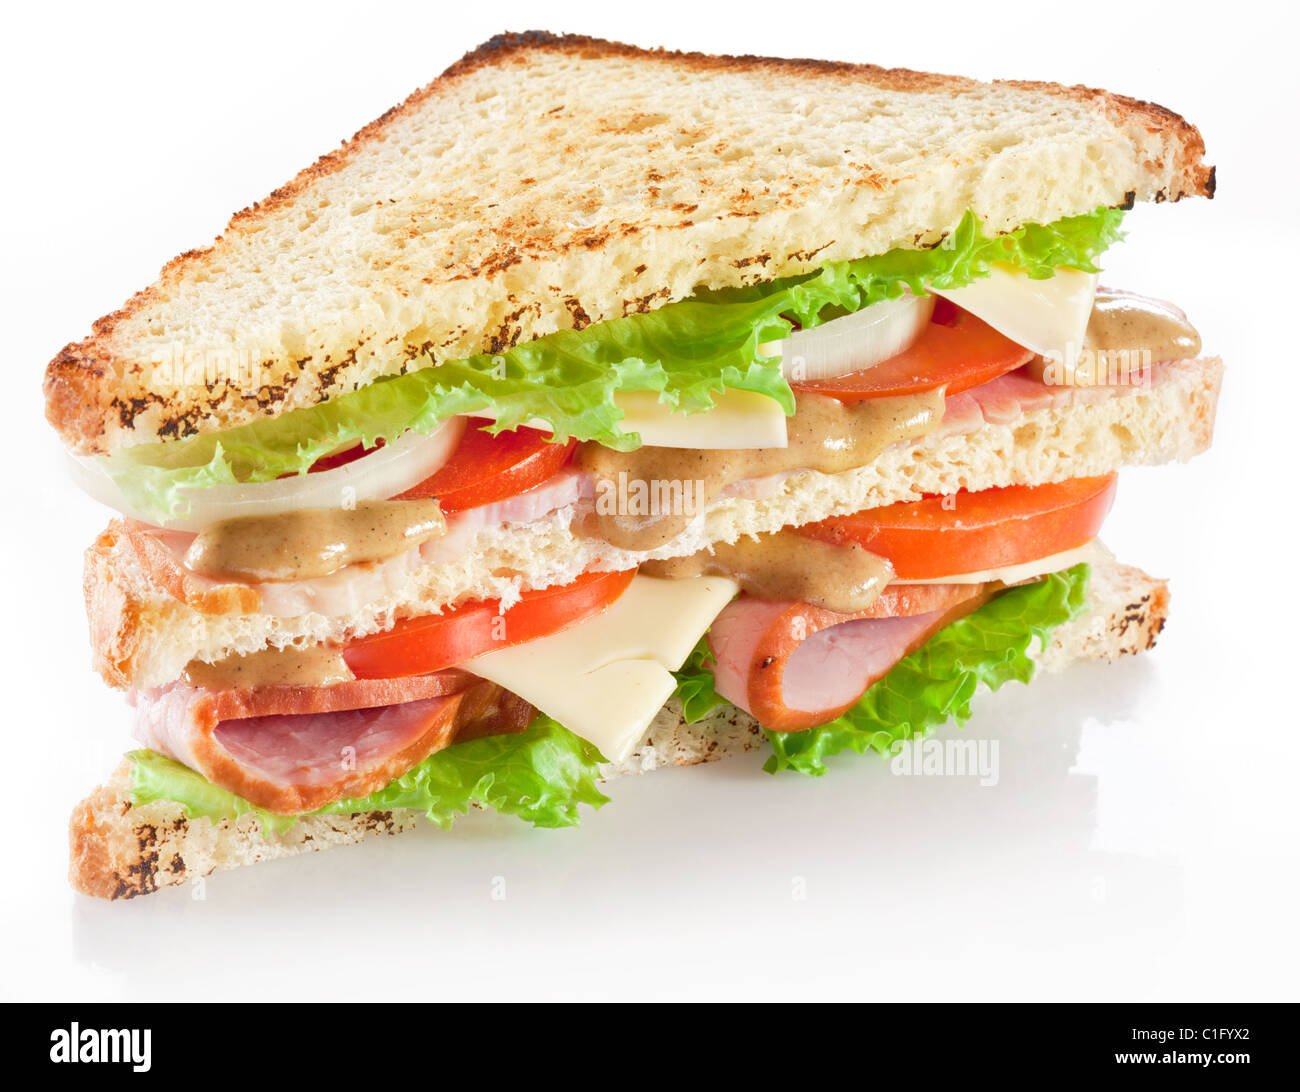 Sandwich with bacon and vegetables on white background - Stock Image